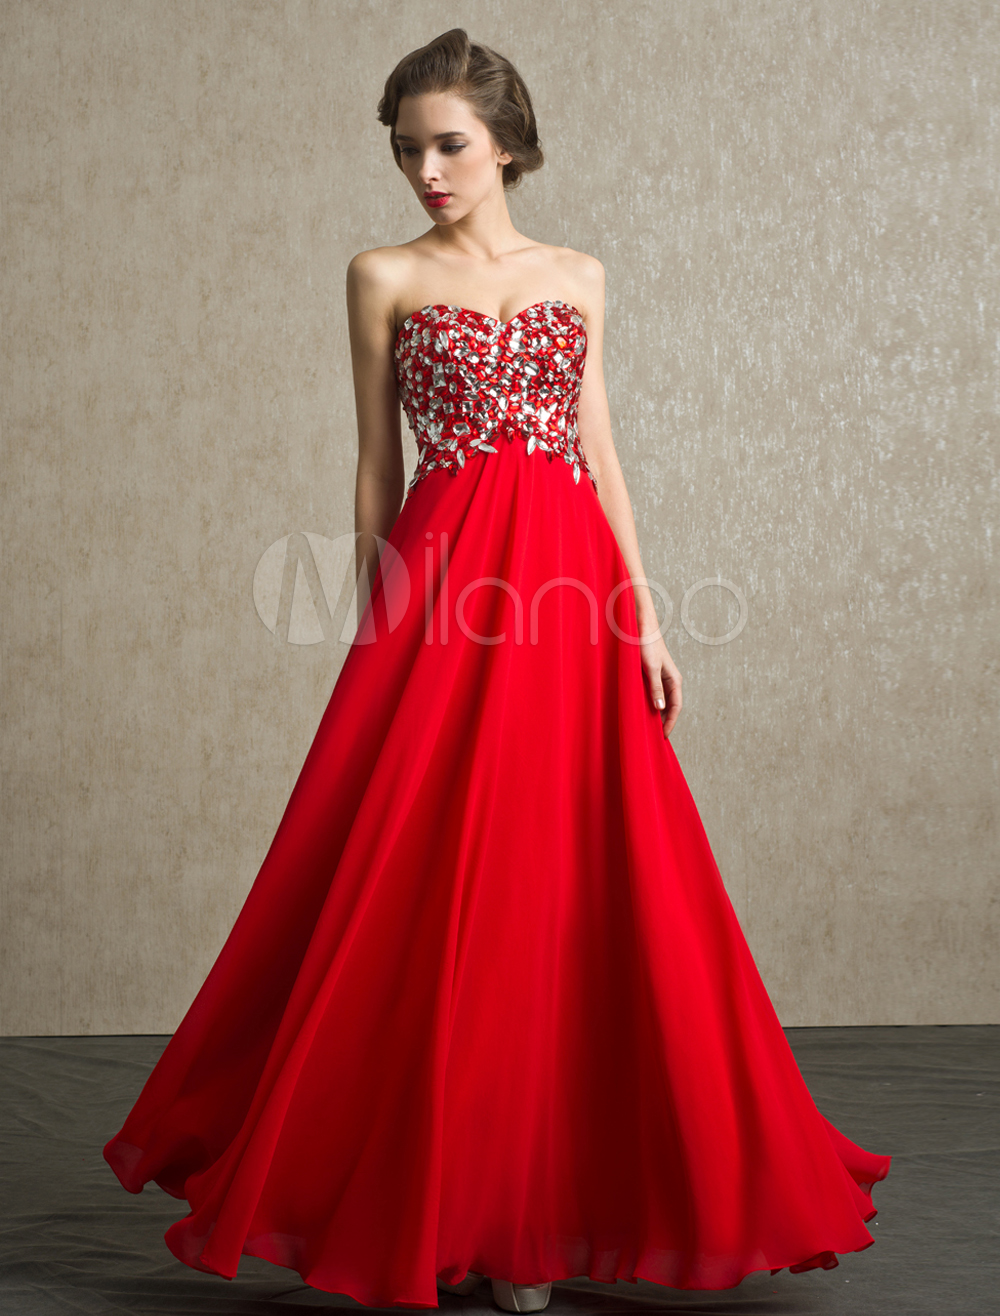 Red prom dress strapless rhinestone backless chiffon dress prom